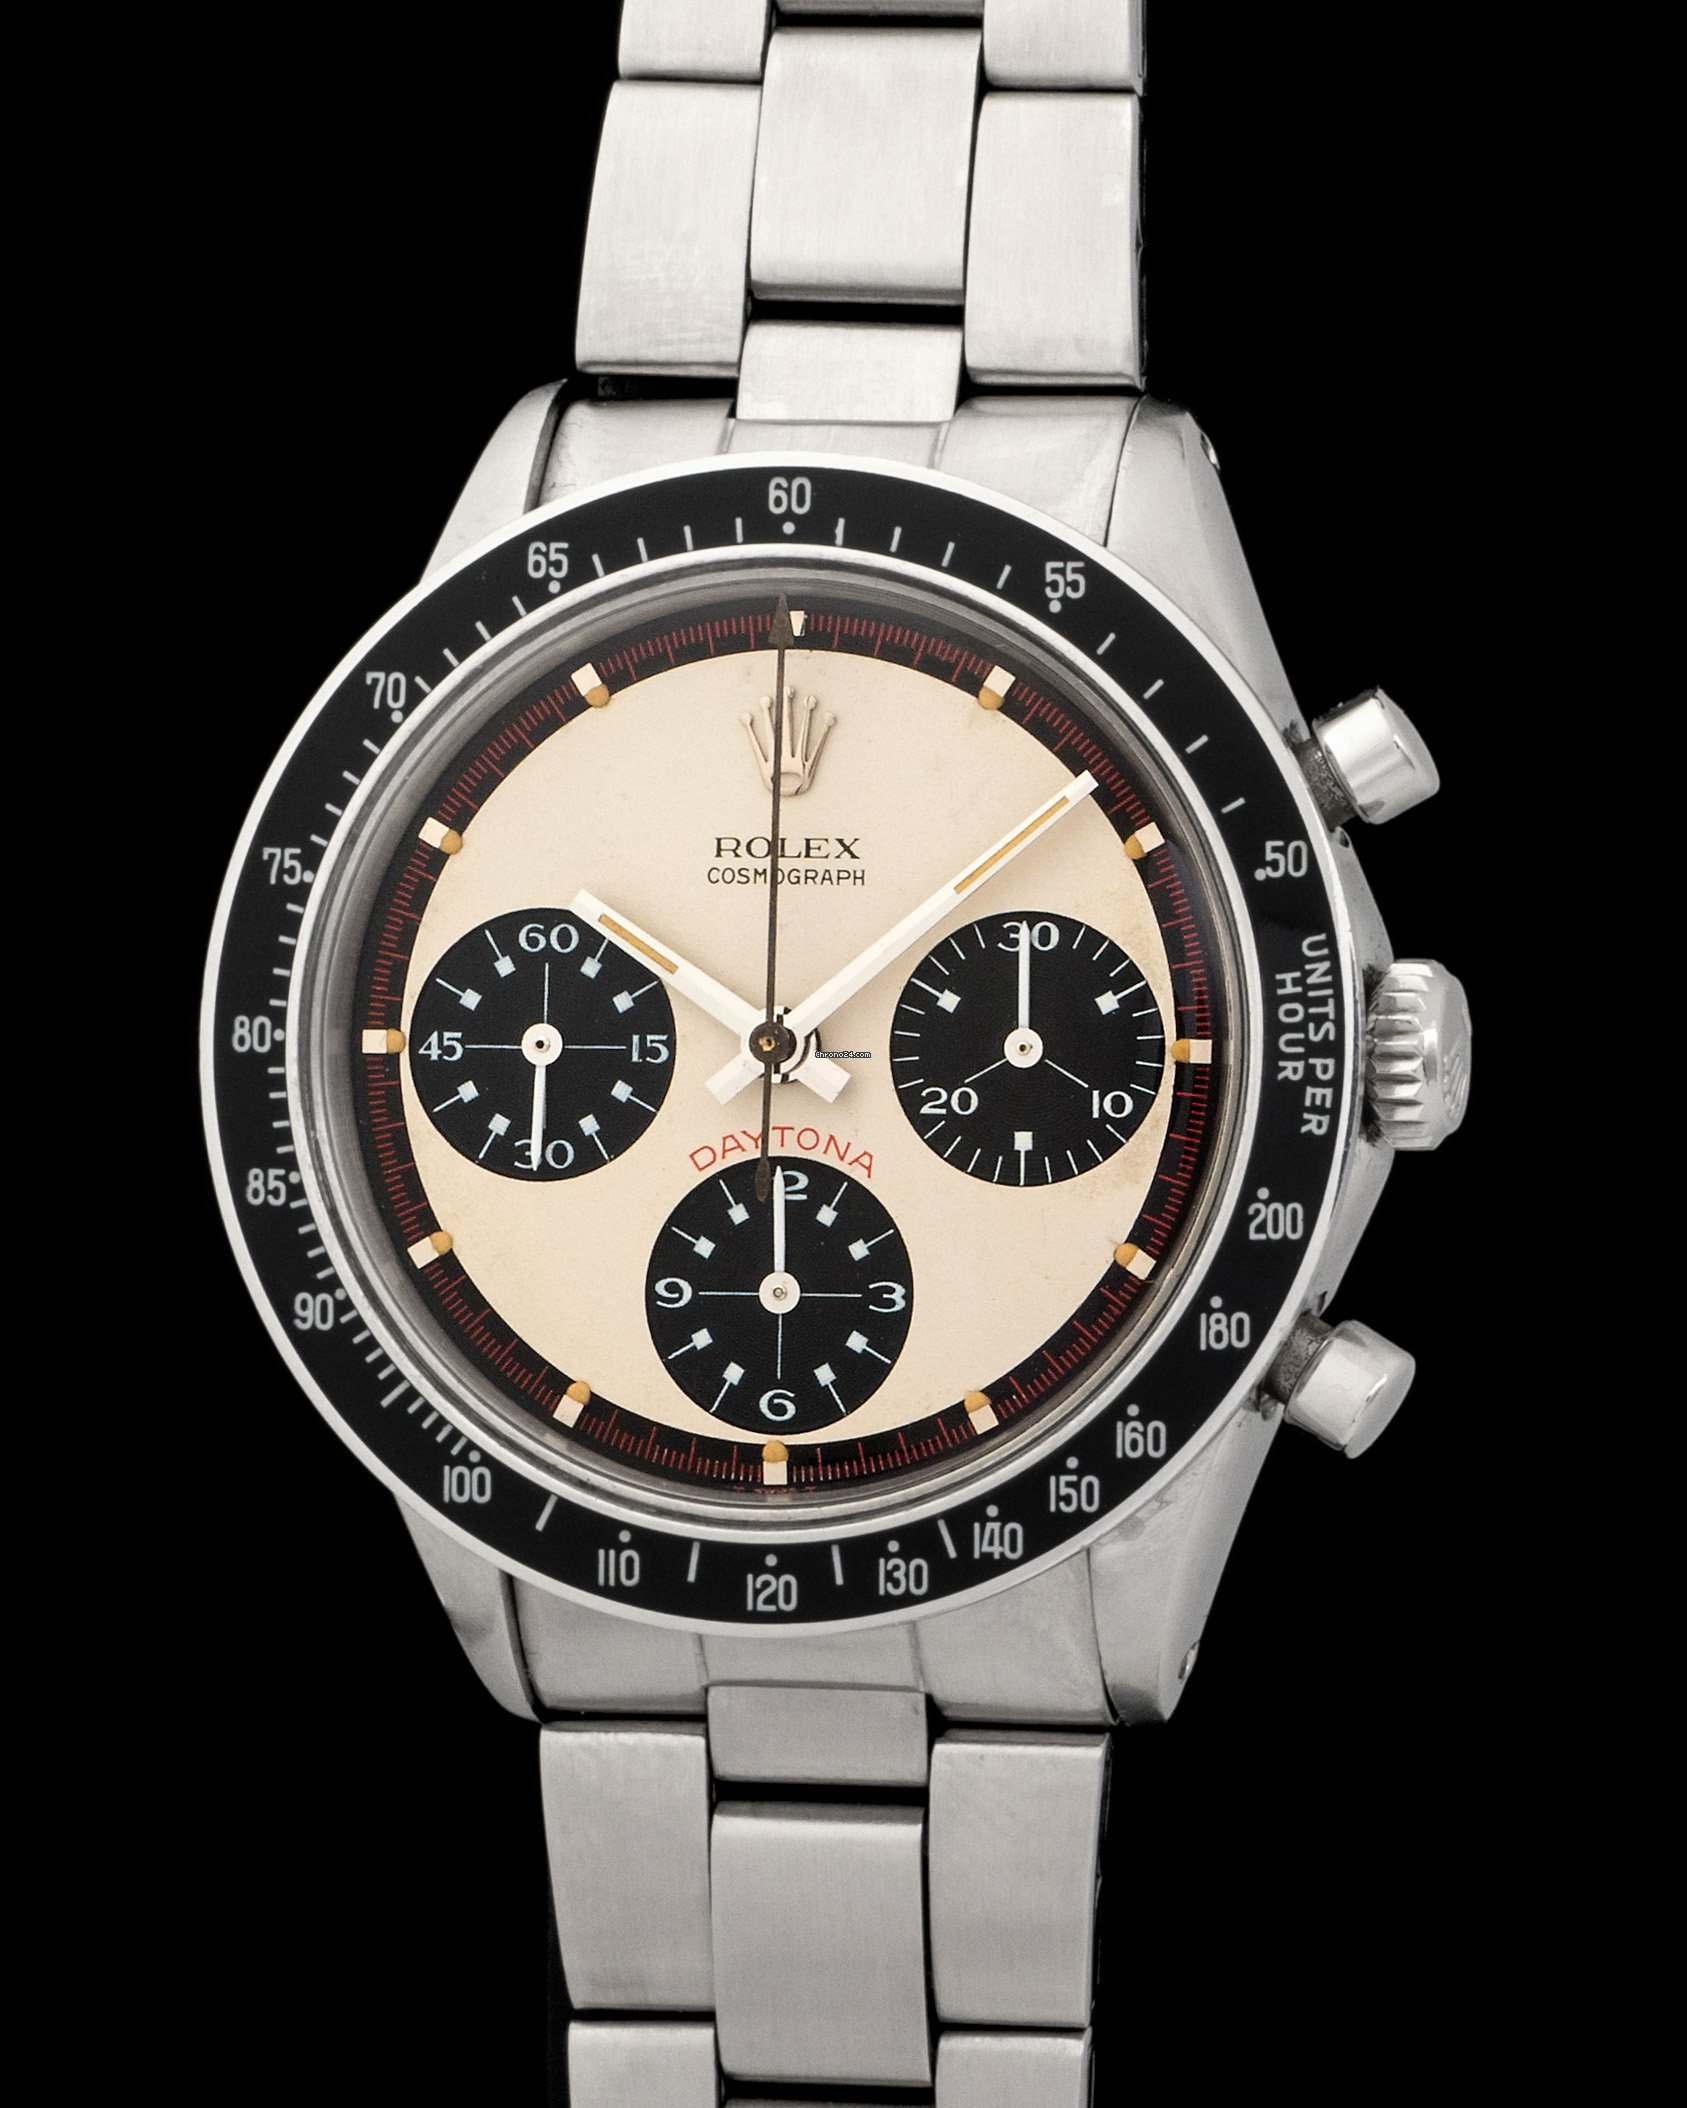 Rolex Daytona 6241 Paul Newman Panda For Price On Request For